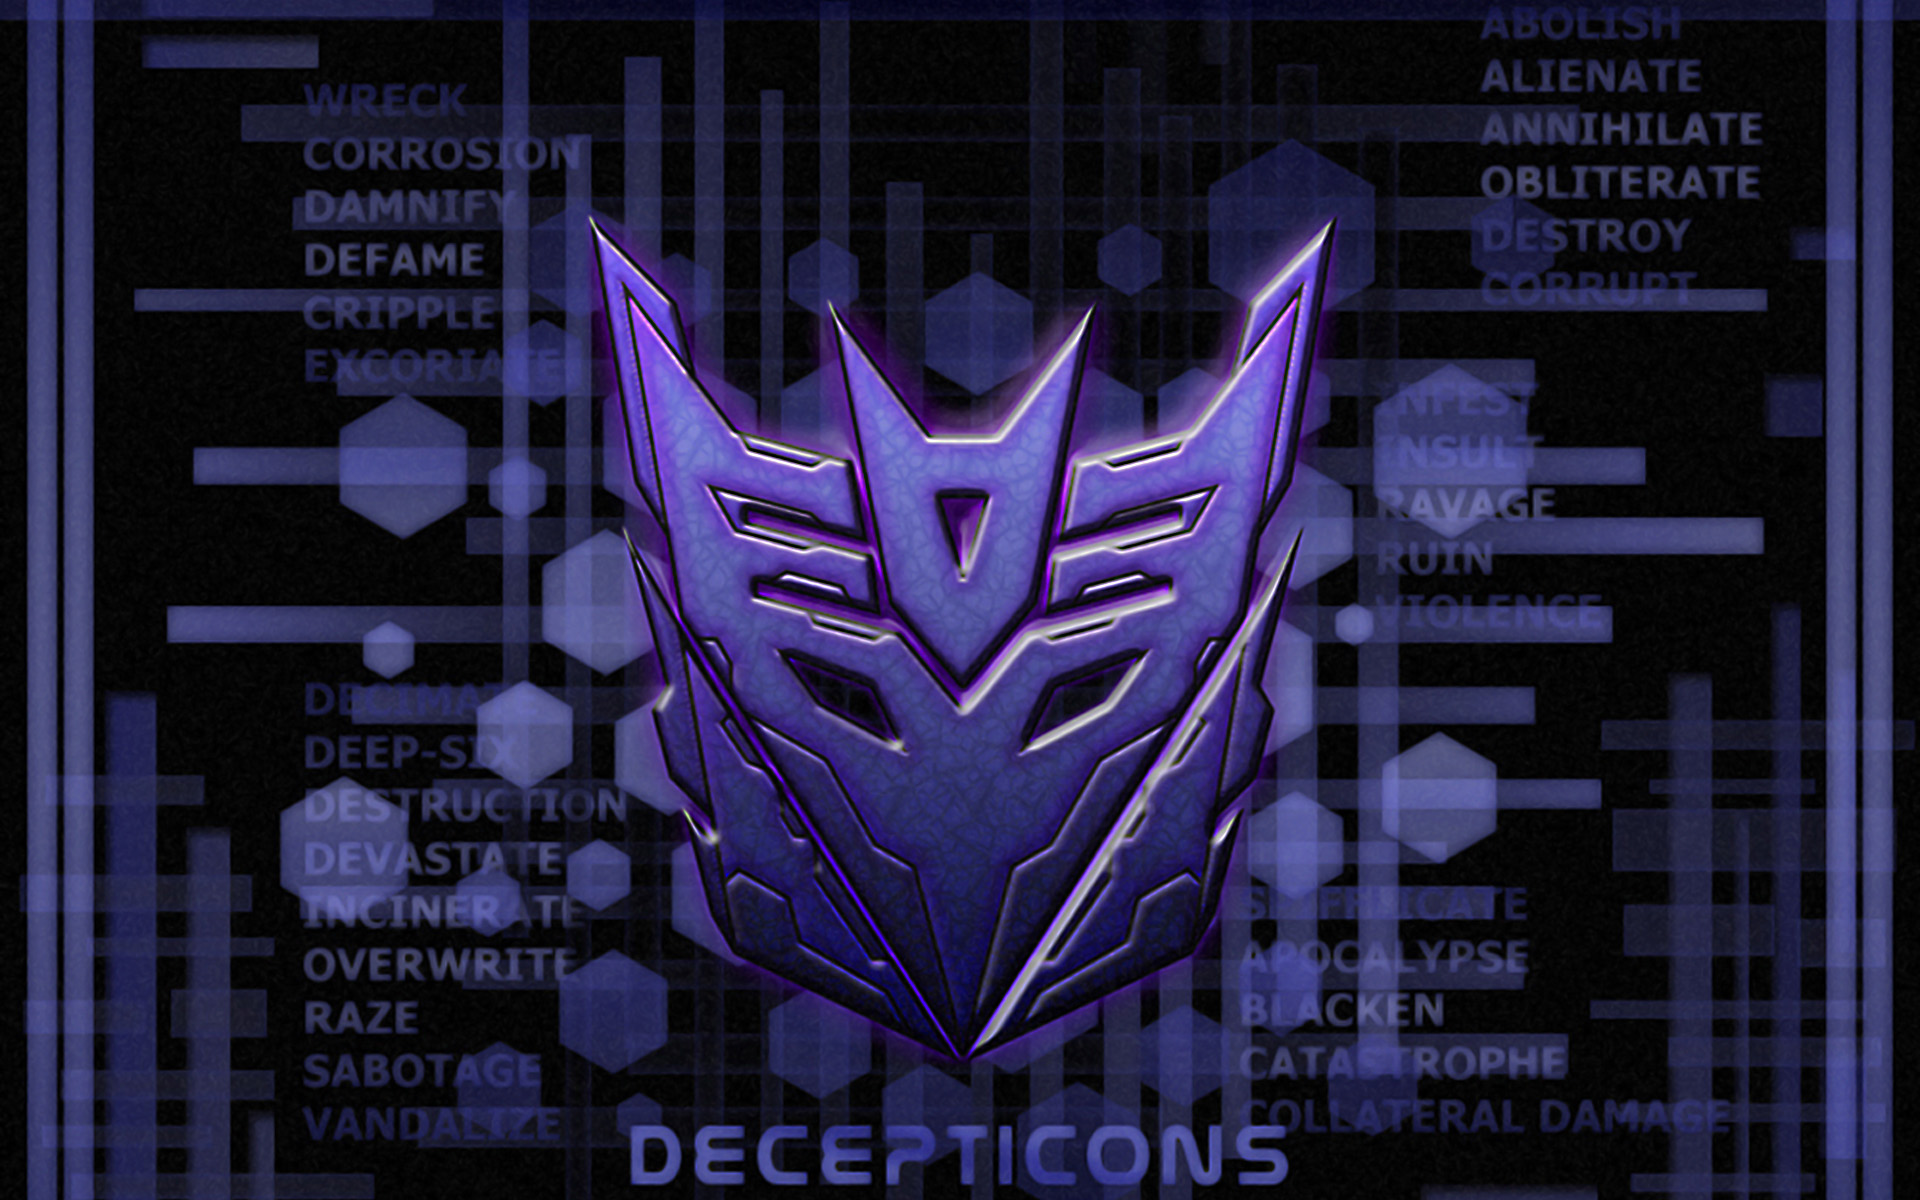 g1 decepticons wallpaper gallery 6  1920 x 1200 pixels   u2013 digital citizen